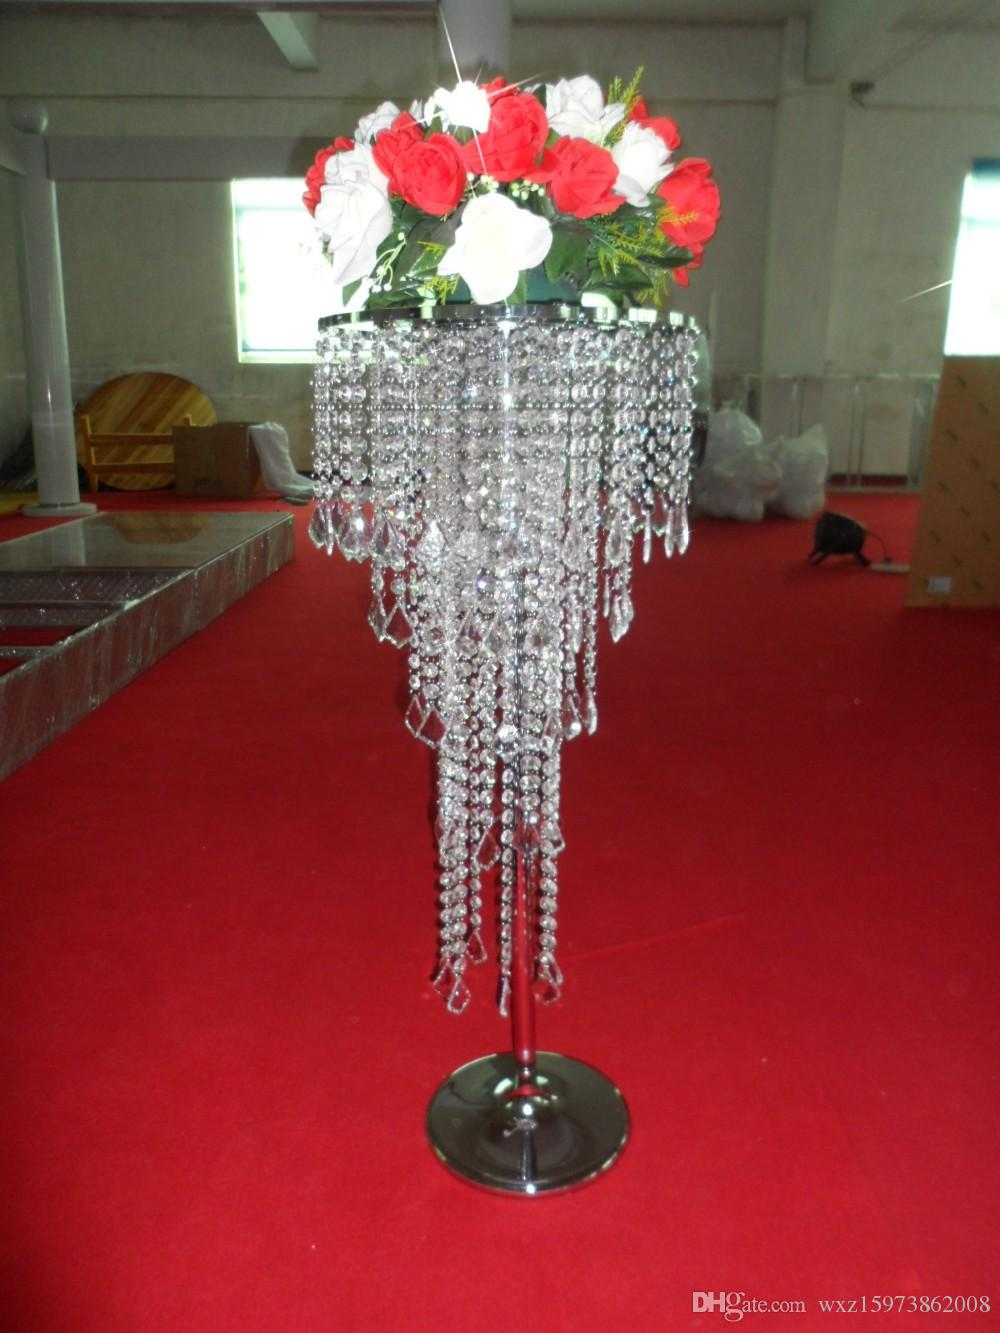 Acrylic Crystal Wedding Centerpiece Table 80cm Tall 35cm Diameter 5 Tier Decor Road Leads Candle Holder